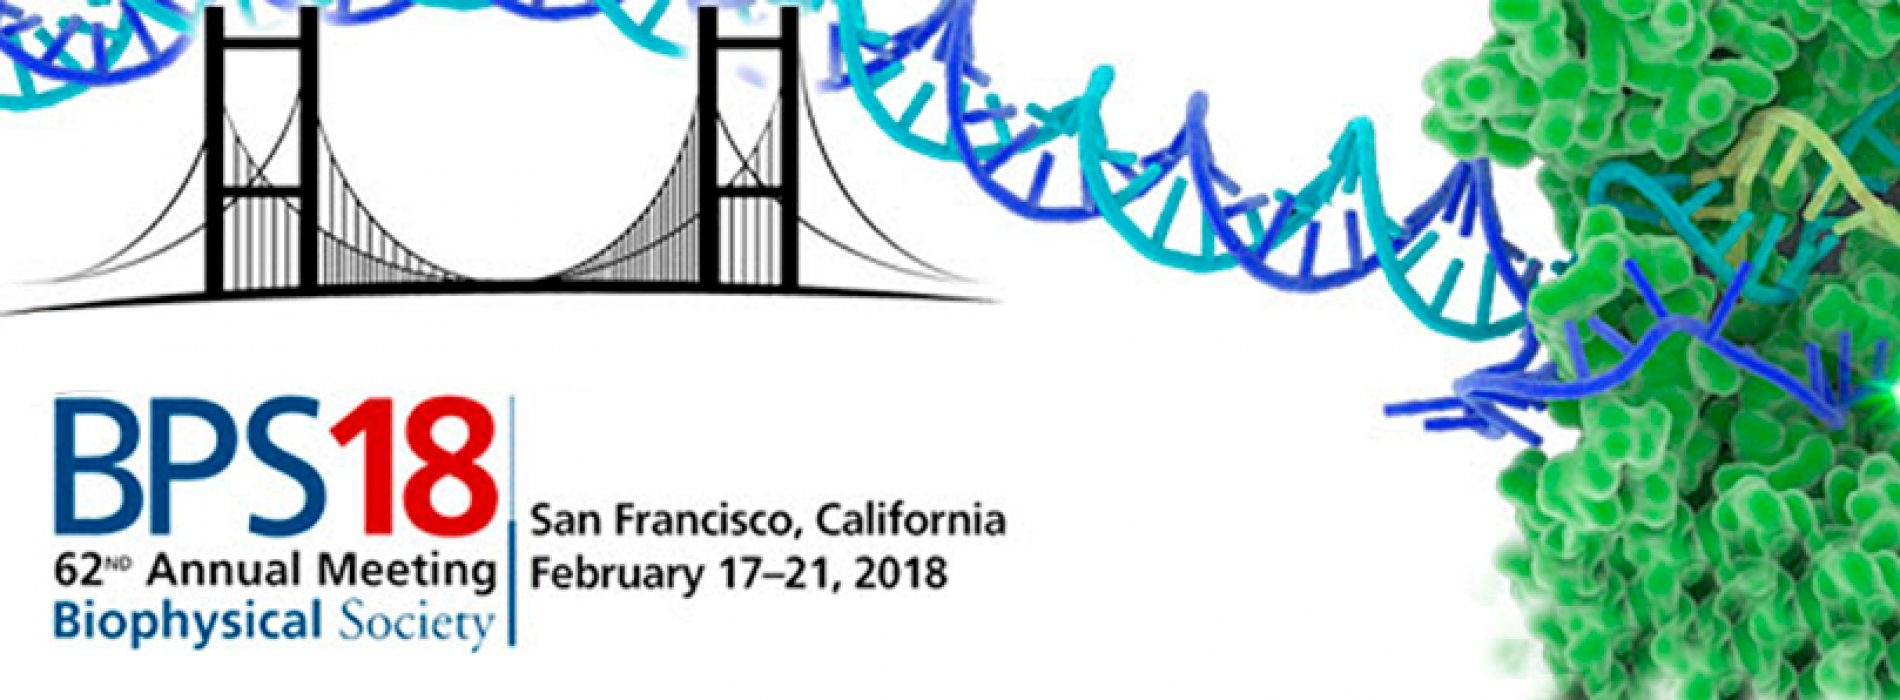 LAST CHANCE: January 15 is the BPS Late Abstract Submission/Early Registration Deadline